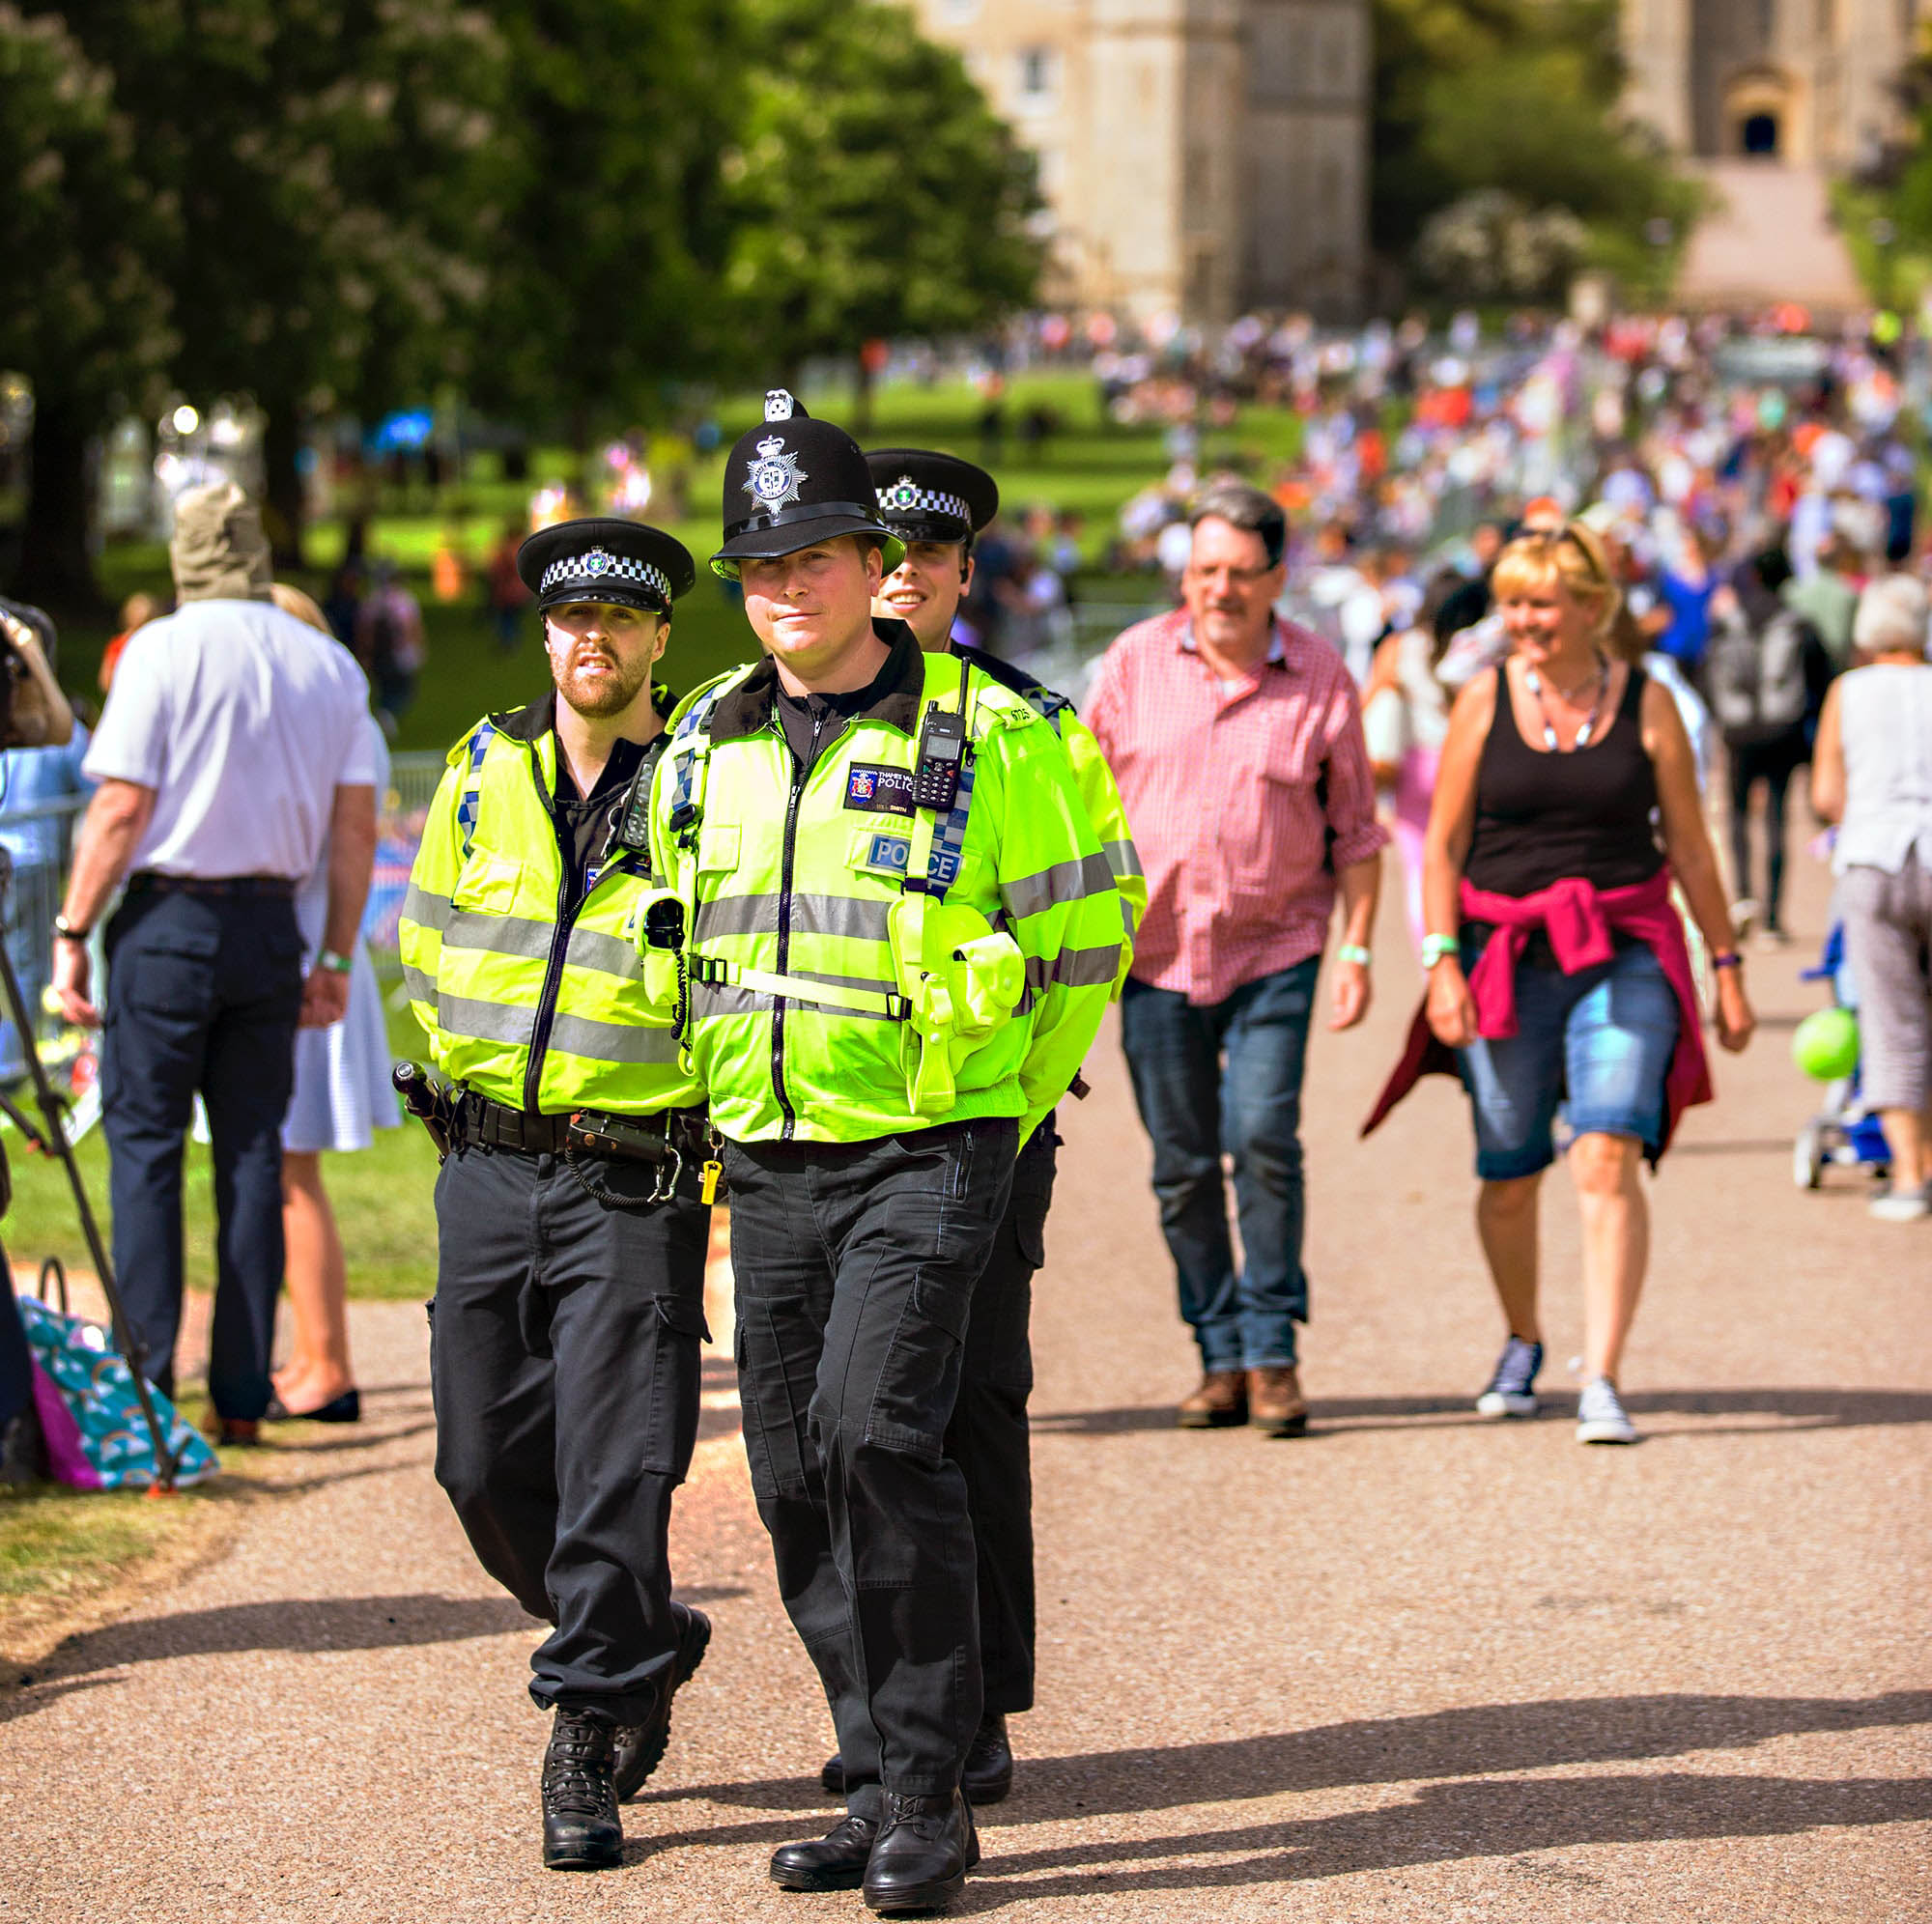 Police patrolling streets, public security and defense workers